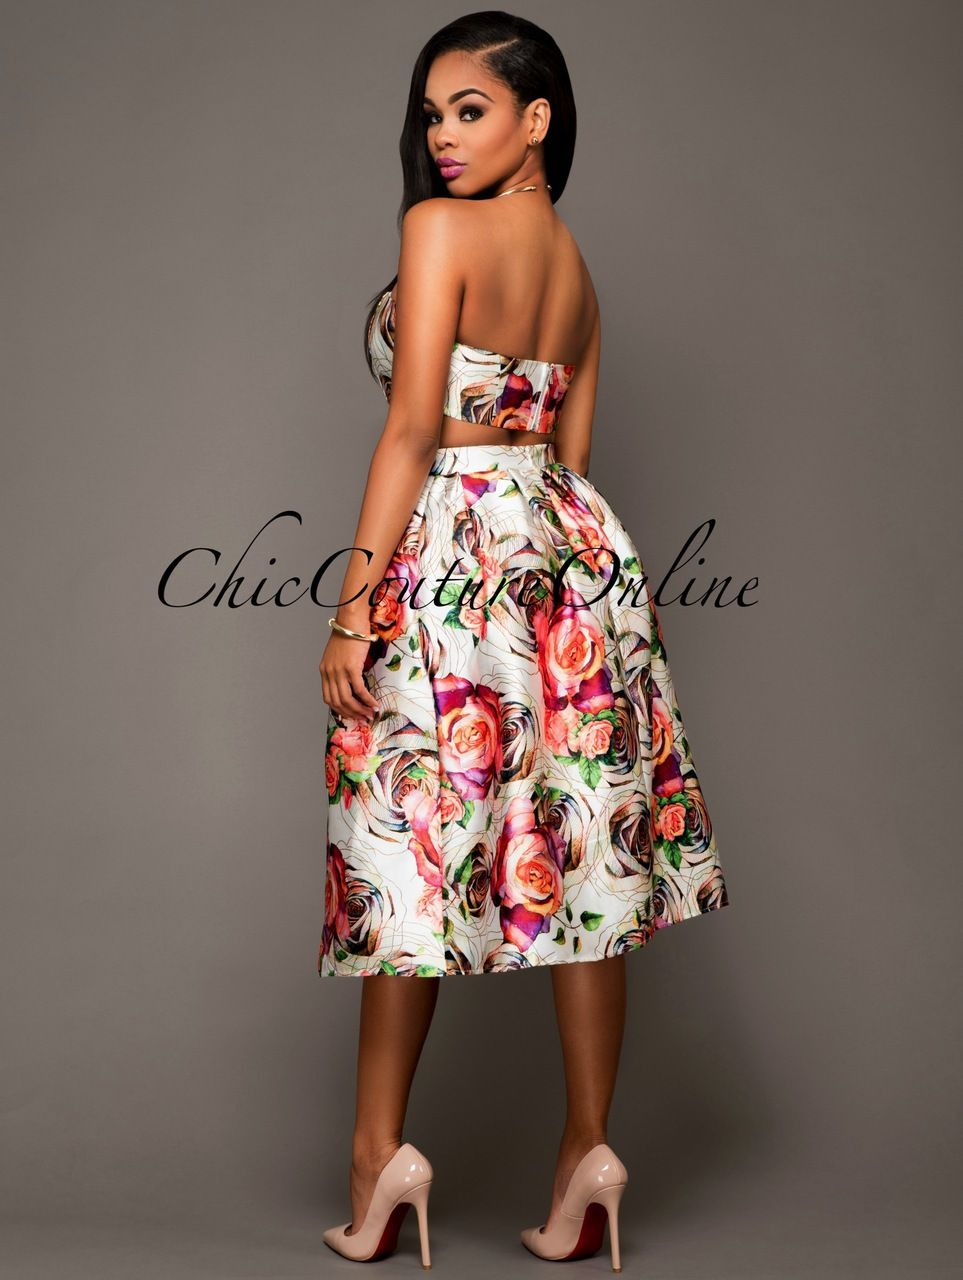 Chic Couture Online - Rosalyn Sheen Ivory Multi-Color Print Two Piece Set.(http://www.chiccoutureonline.com/rosalyn-sheen-ivory-multi-color-print-two-piece-set/)